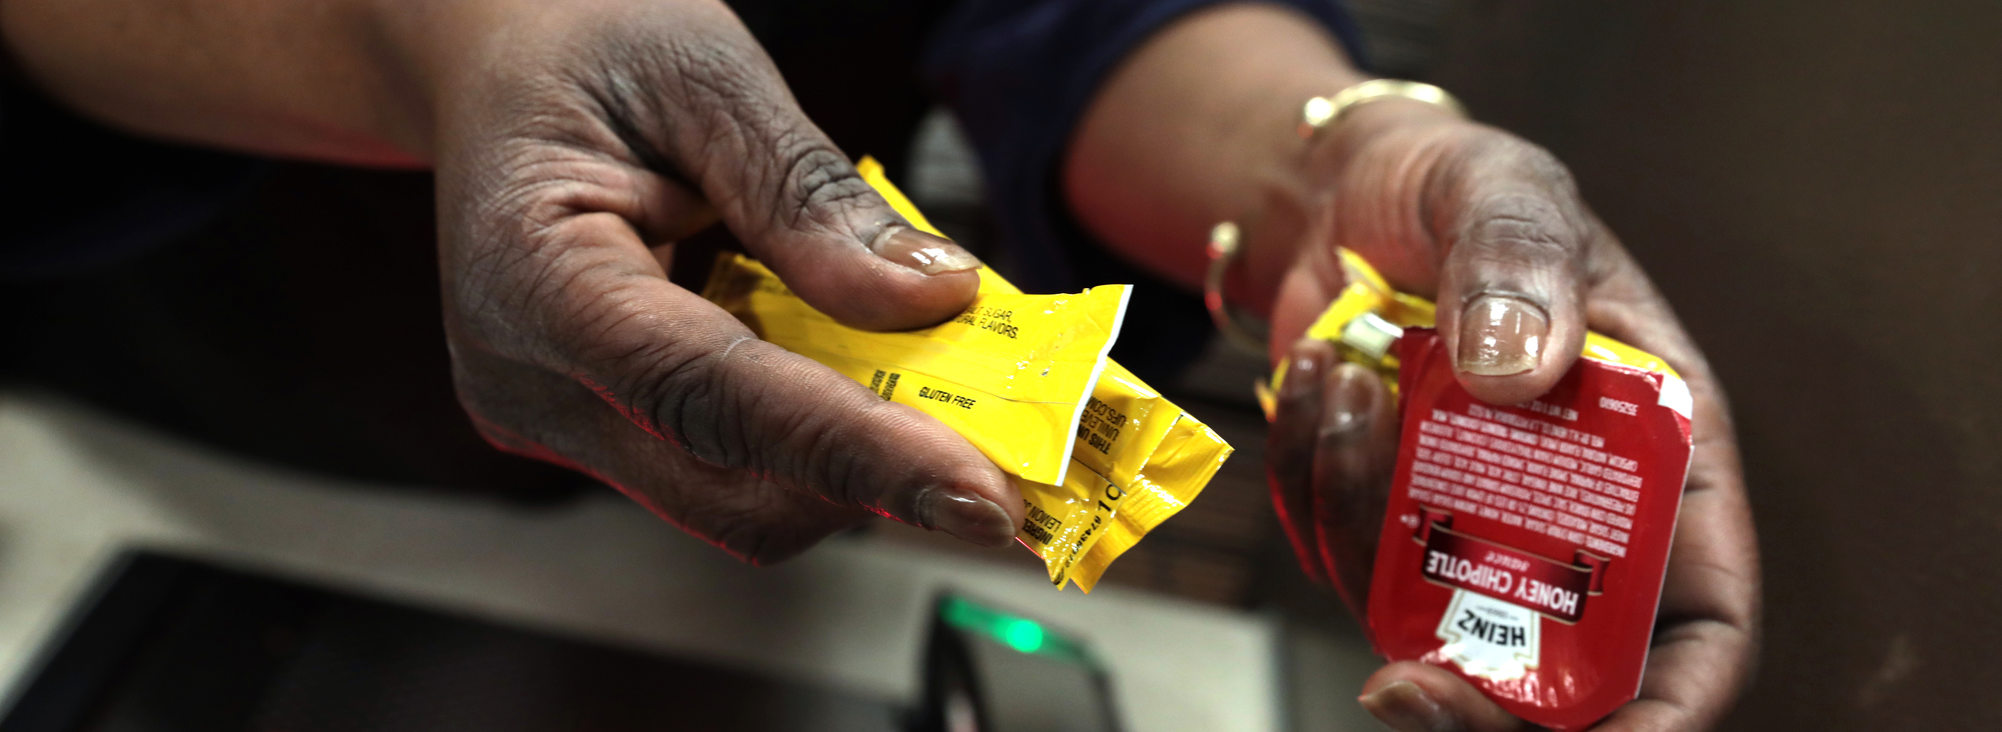 a deli worker hands some condiment packages to a customer who asked  for them